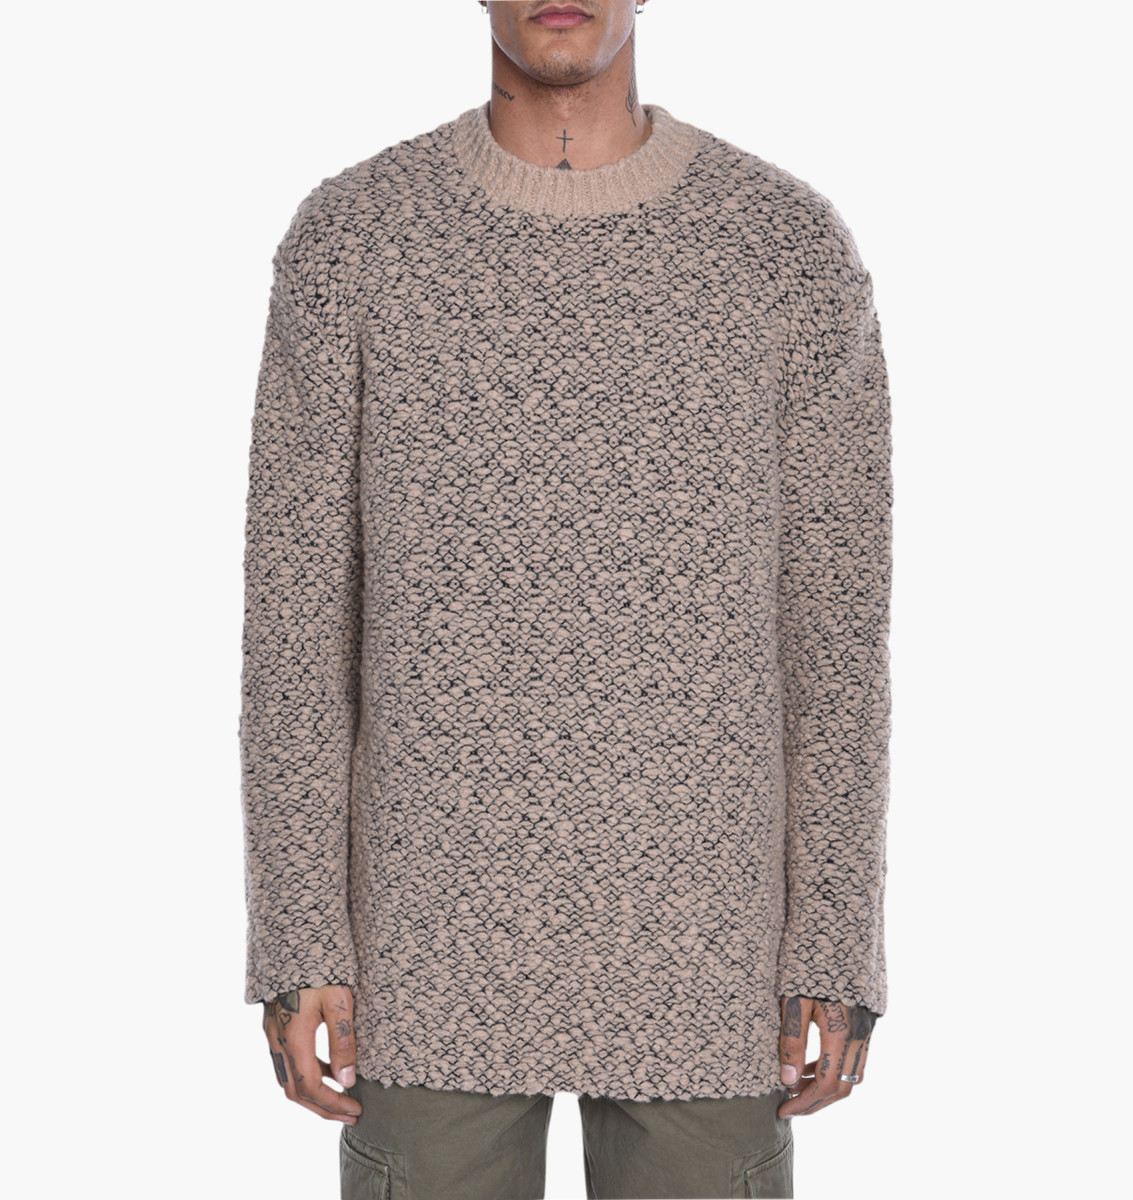 yeezy-season-3-oversized-teddy-boucle-sweater.jpg